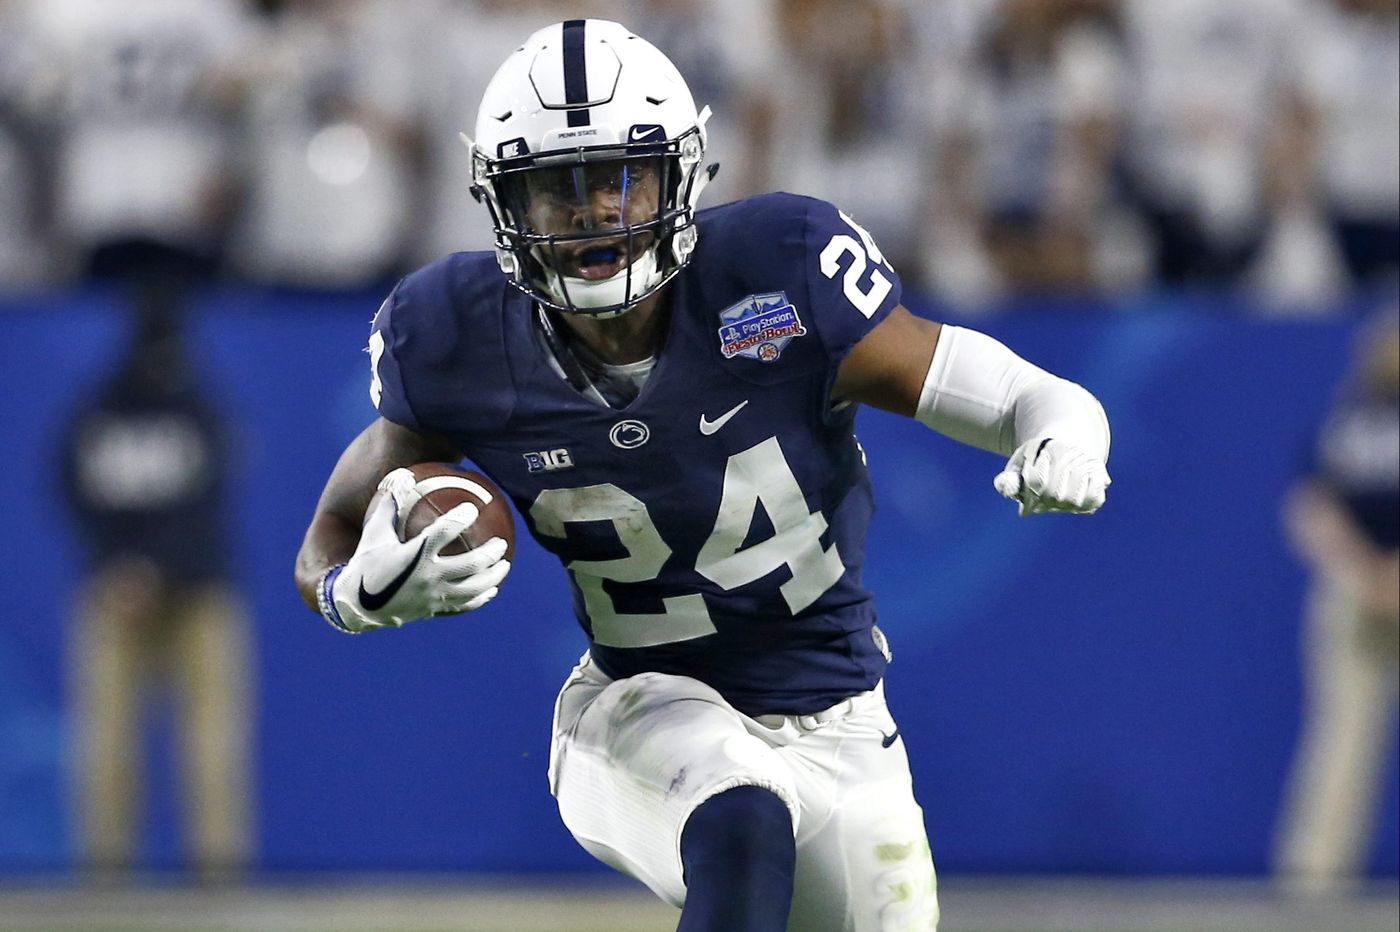 Penn State's Miles Sanders ready to replace Saquon Barkley as No. 1 running back